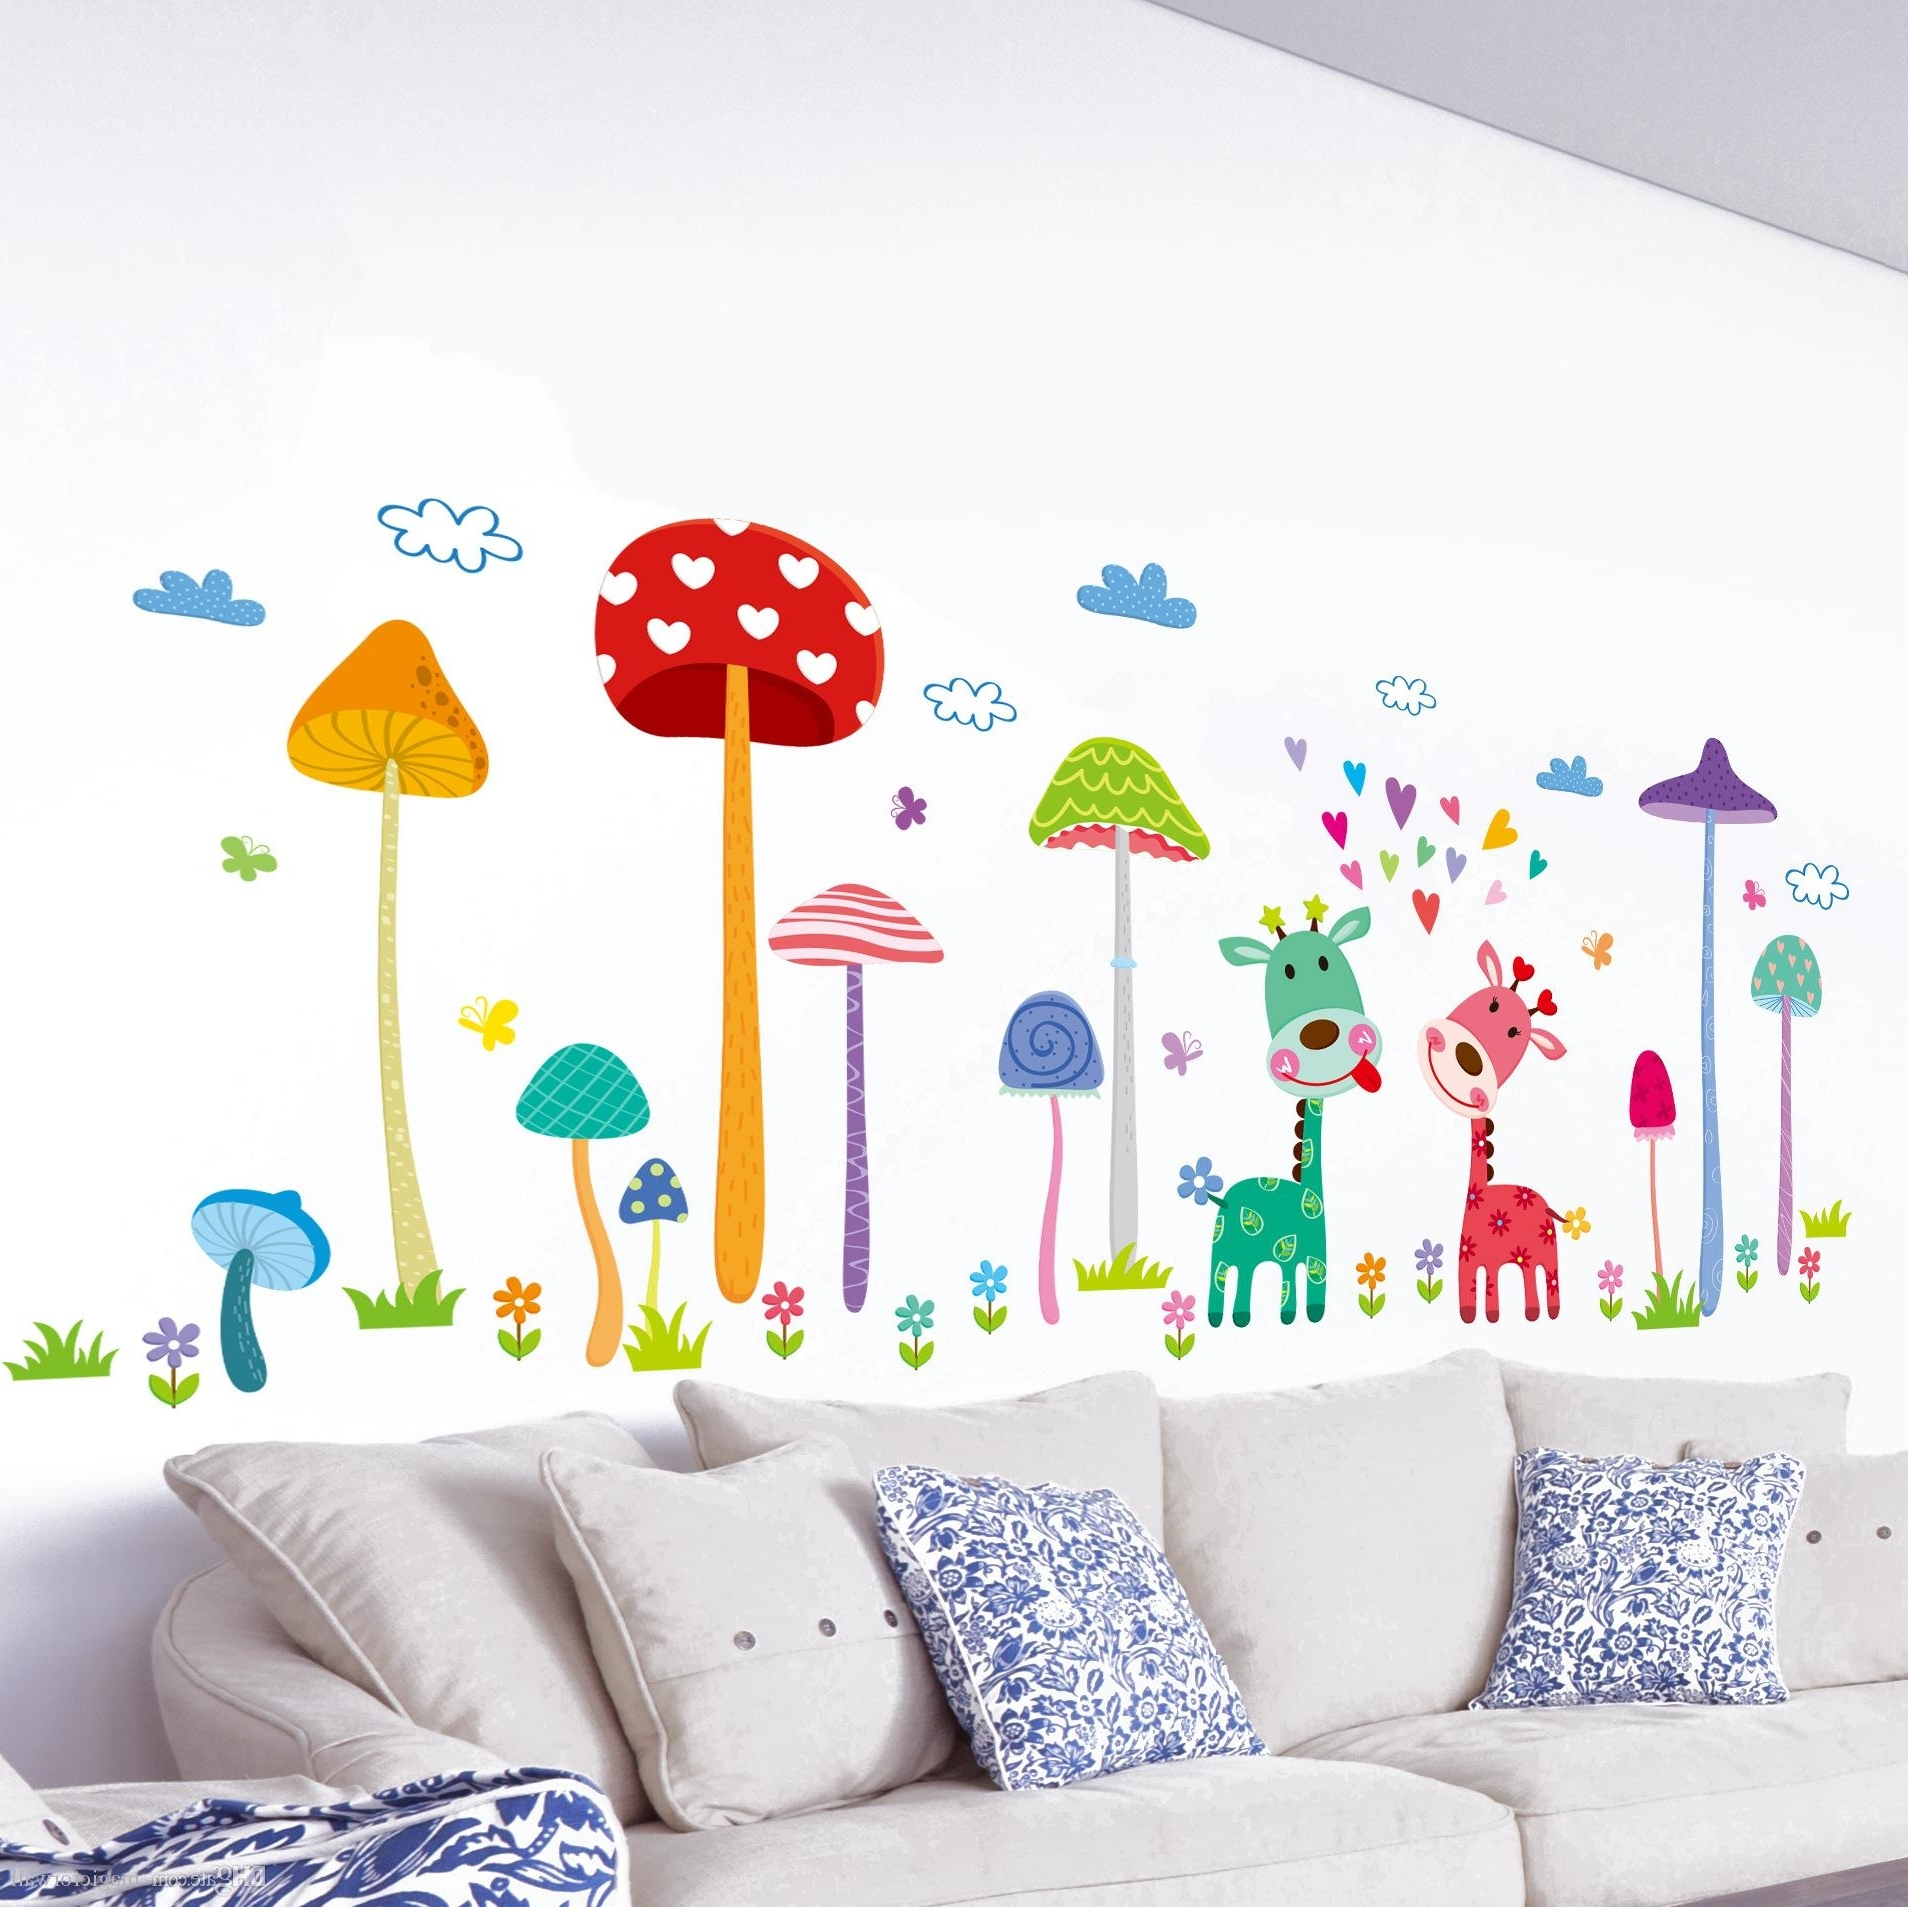 Kids Wall Art pertaining to 2017 Forest Mushroom Deer Animals Home Wall Art Mural Decor Kids Babies